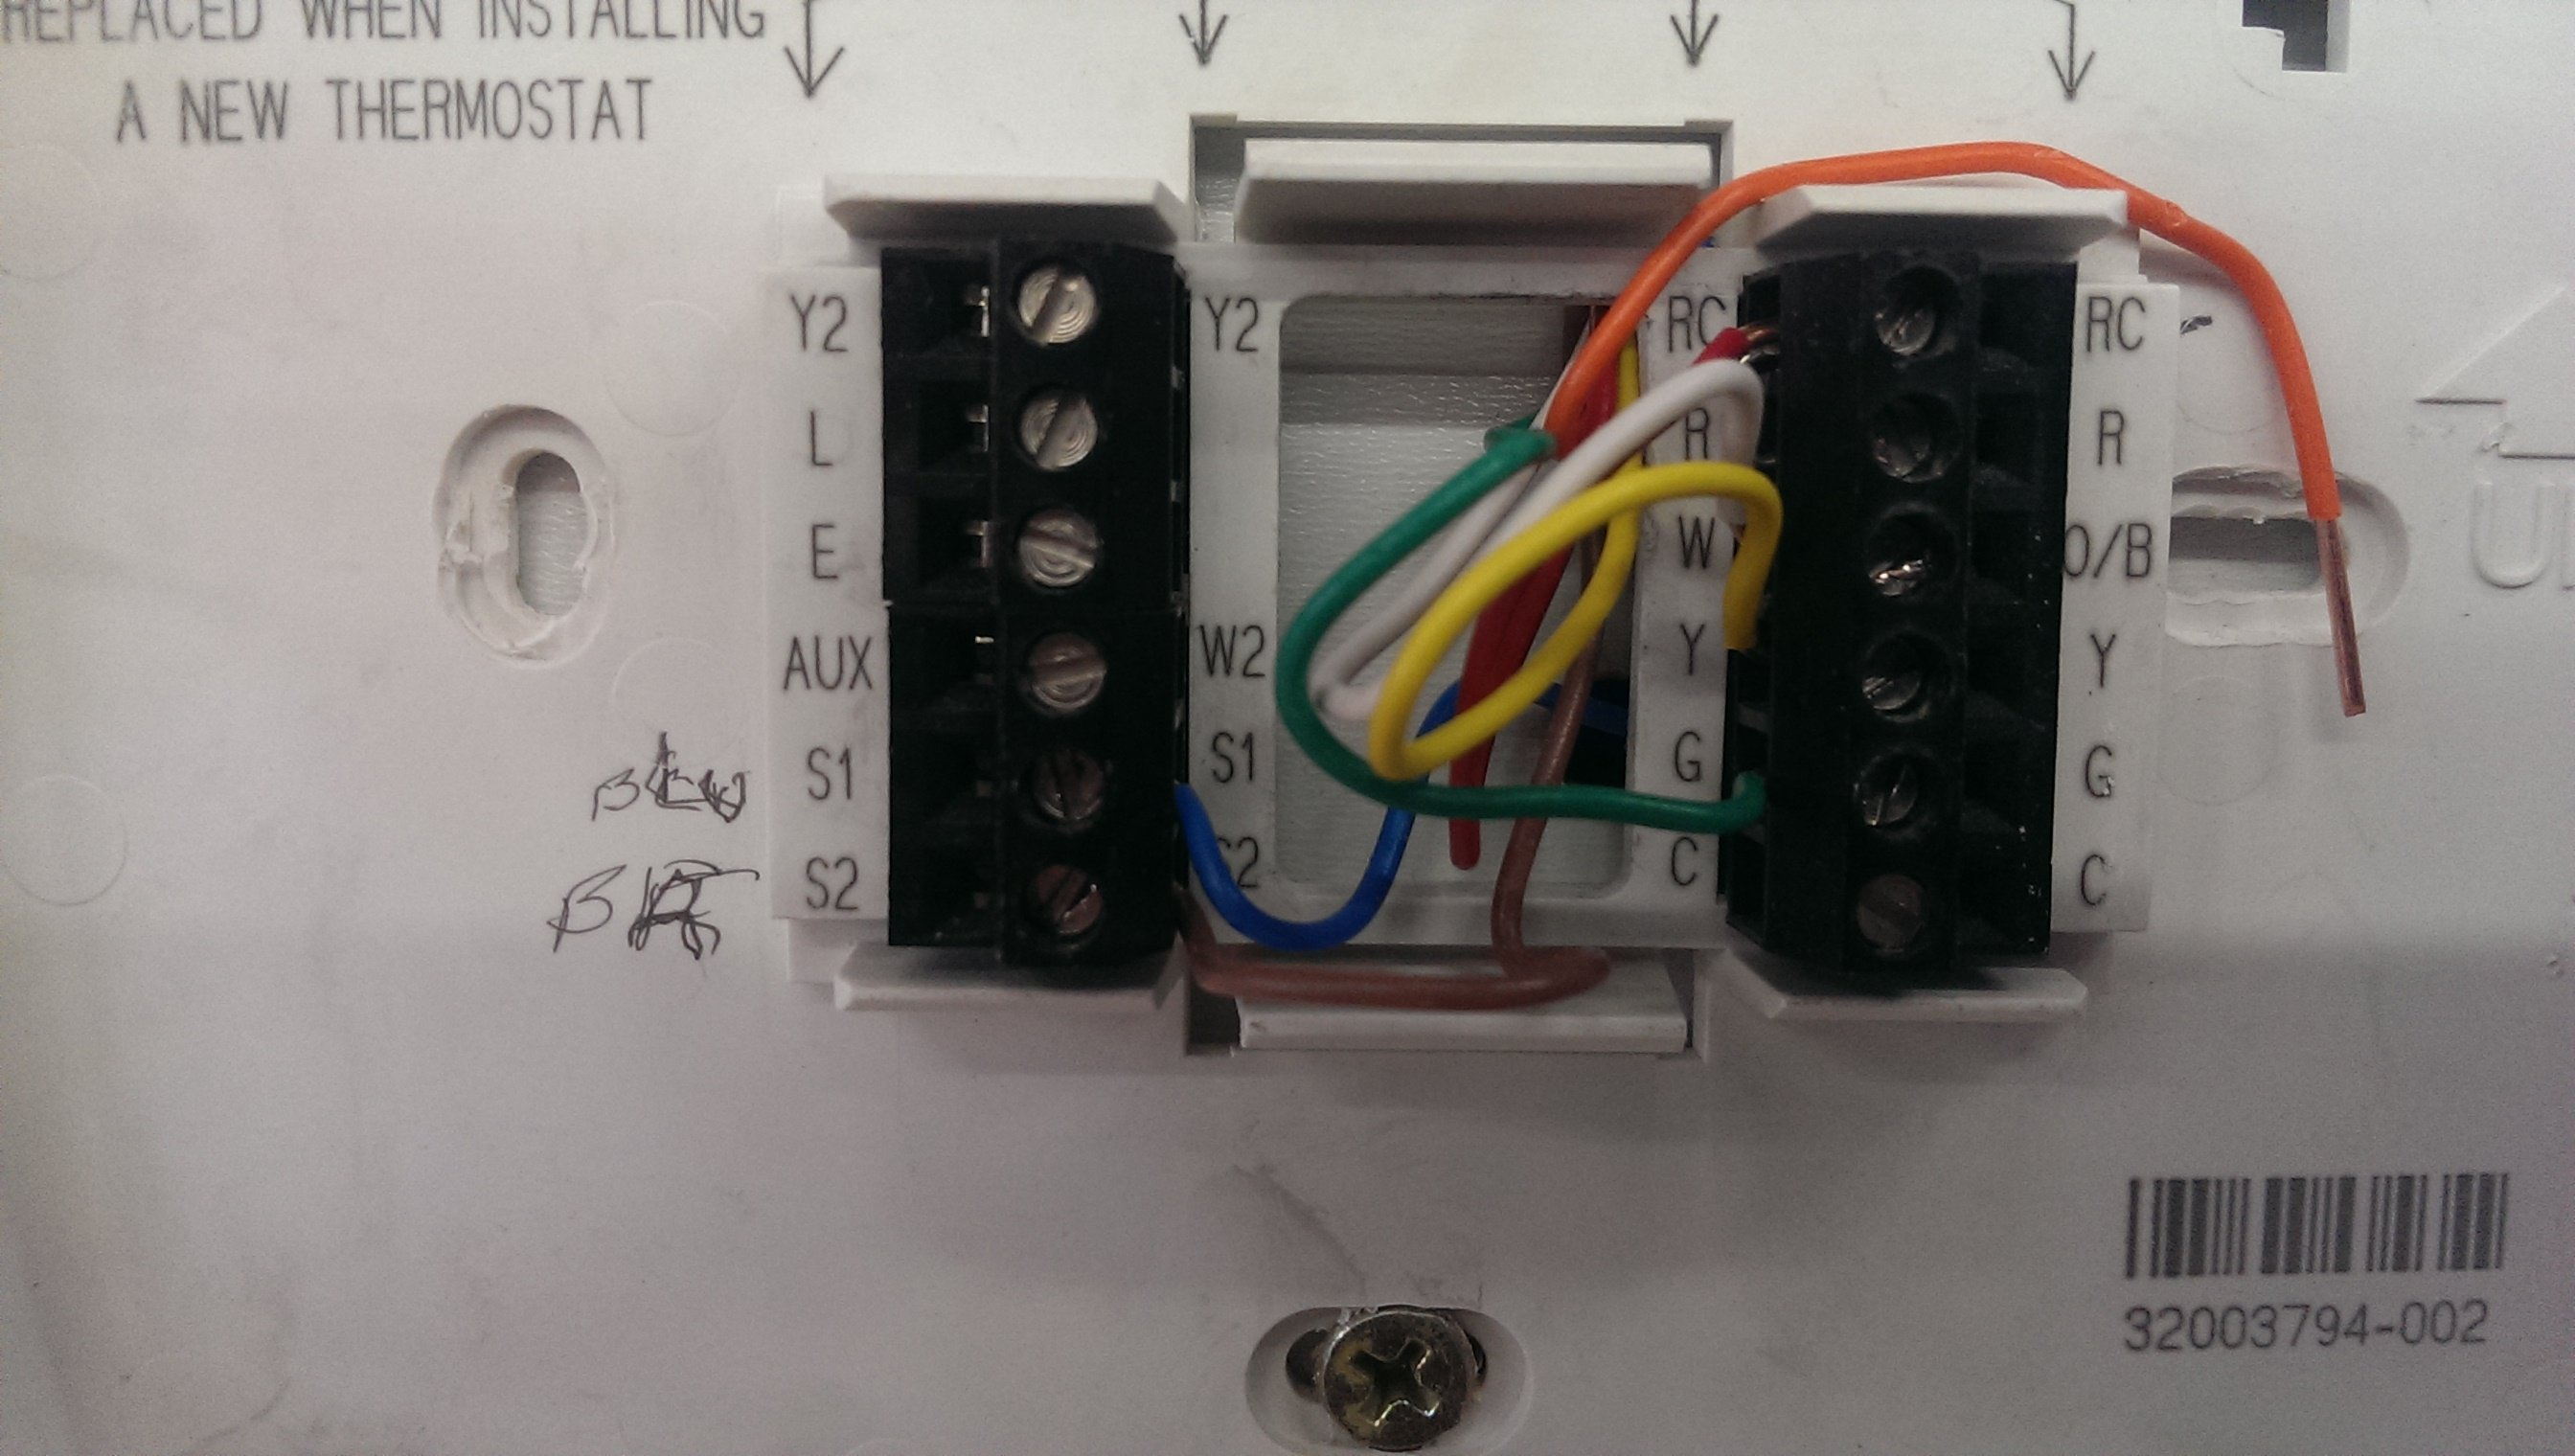 nest wiring diagram s1 s2 wiring library Heart Sounds S1 and S2 i am replacing thermostat that has s1 \u0026 s2 wires what are they for imag0209 jpg nest wiring diagram